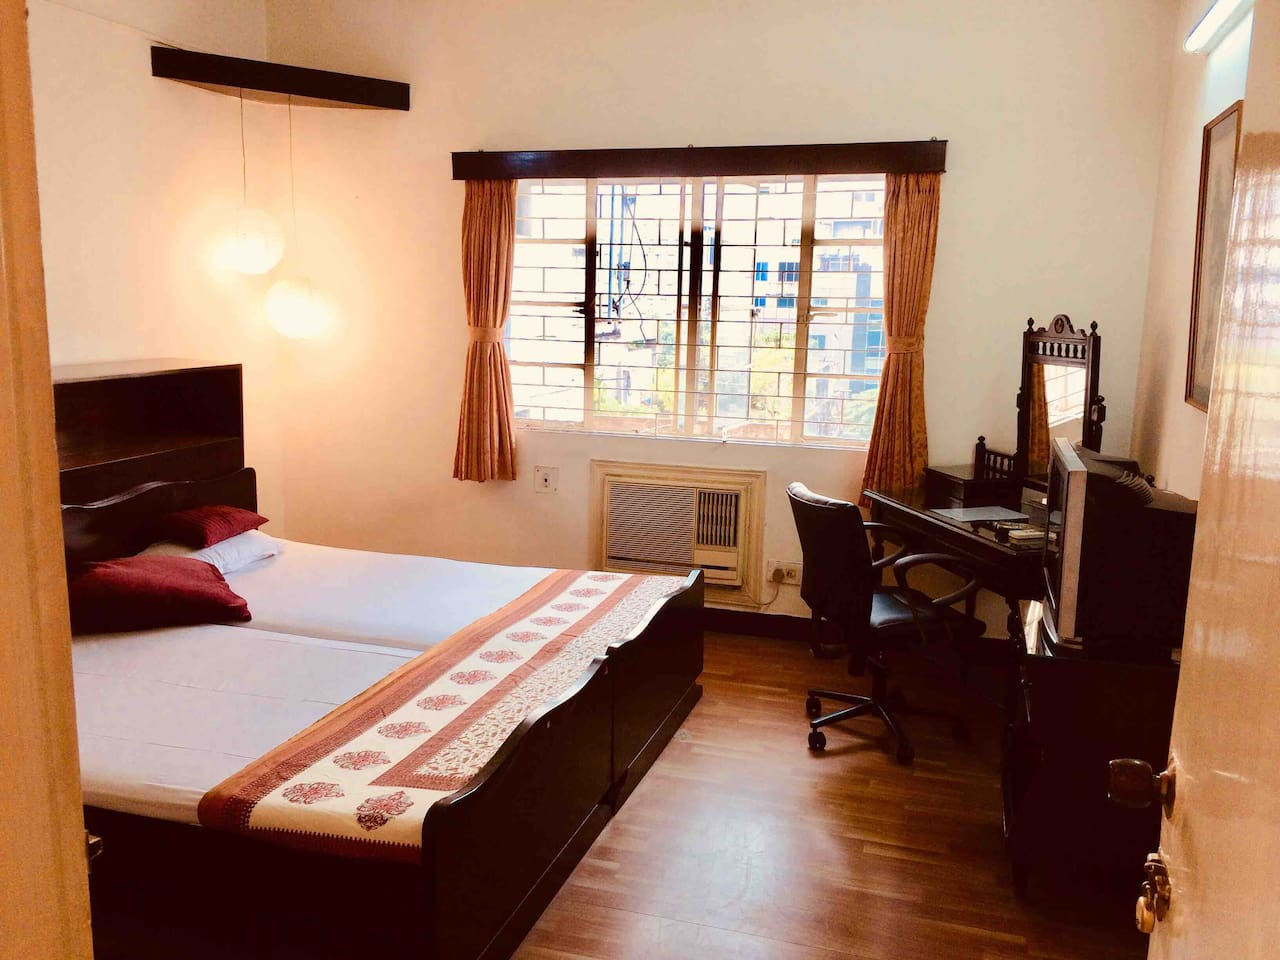 This photo is taken from the main door to Stilt Walker North Private Room. The 2 single beds joined together, a large window, AC (Wall fitting), Antique dressing table which can be used as a writing desk / laptop rest, with a swivel chair for comfort